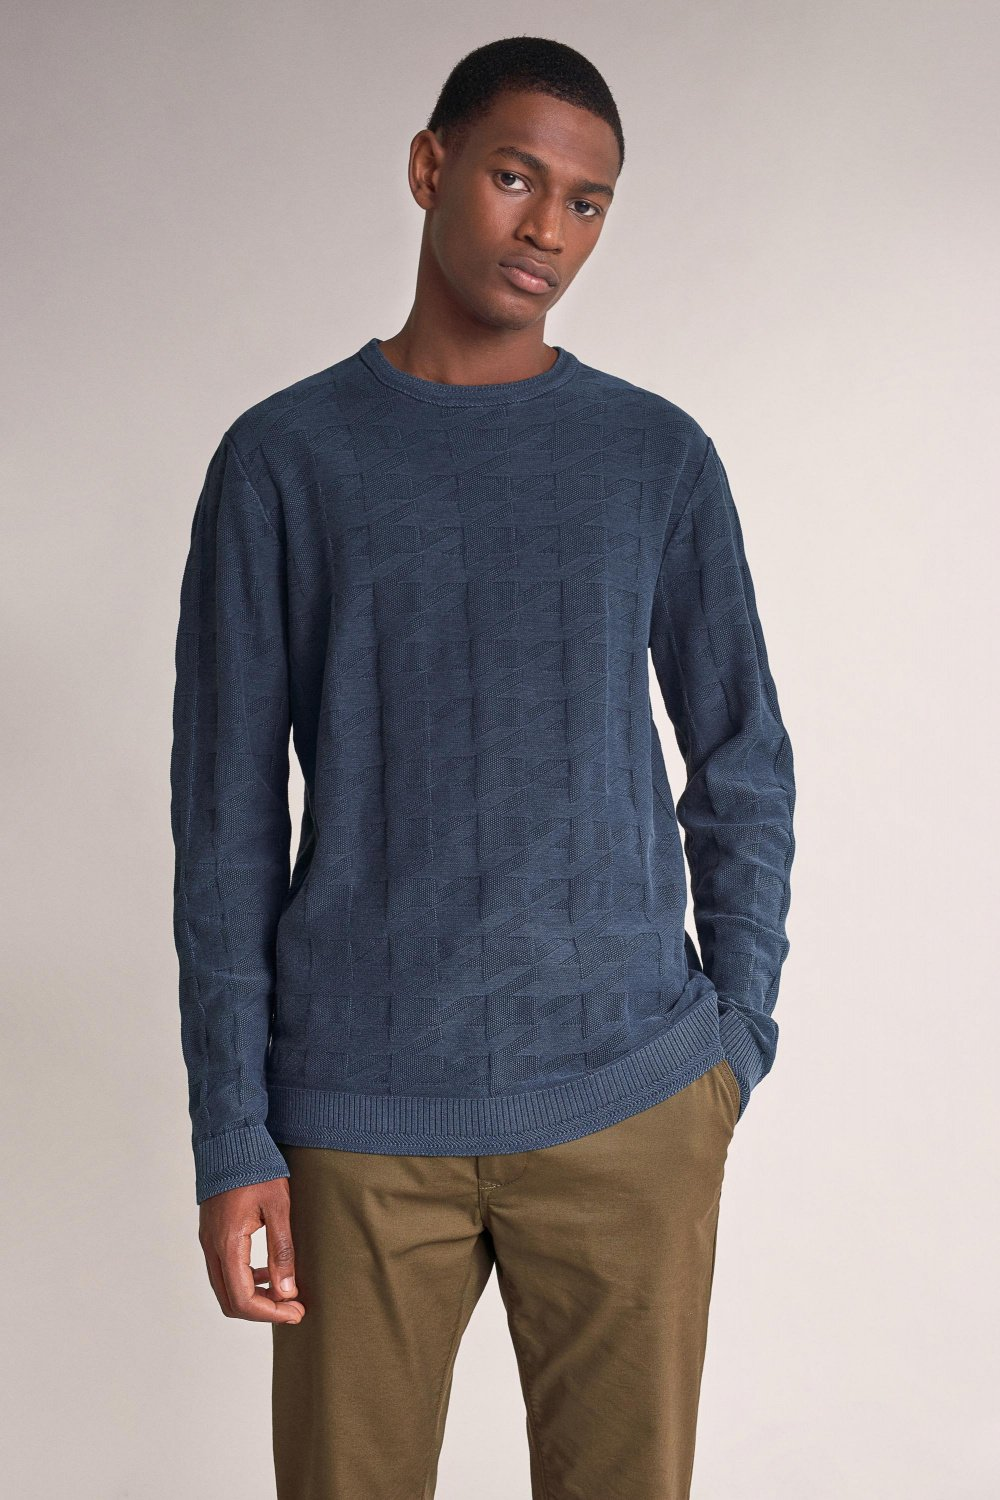 Jacquard sweater - Salsa